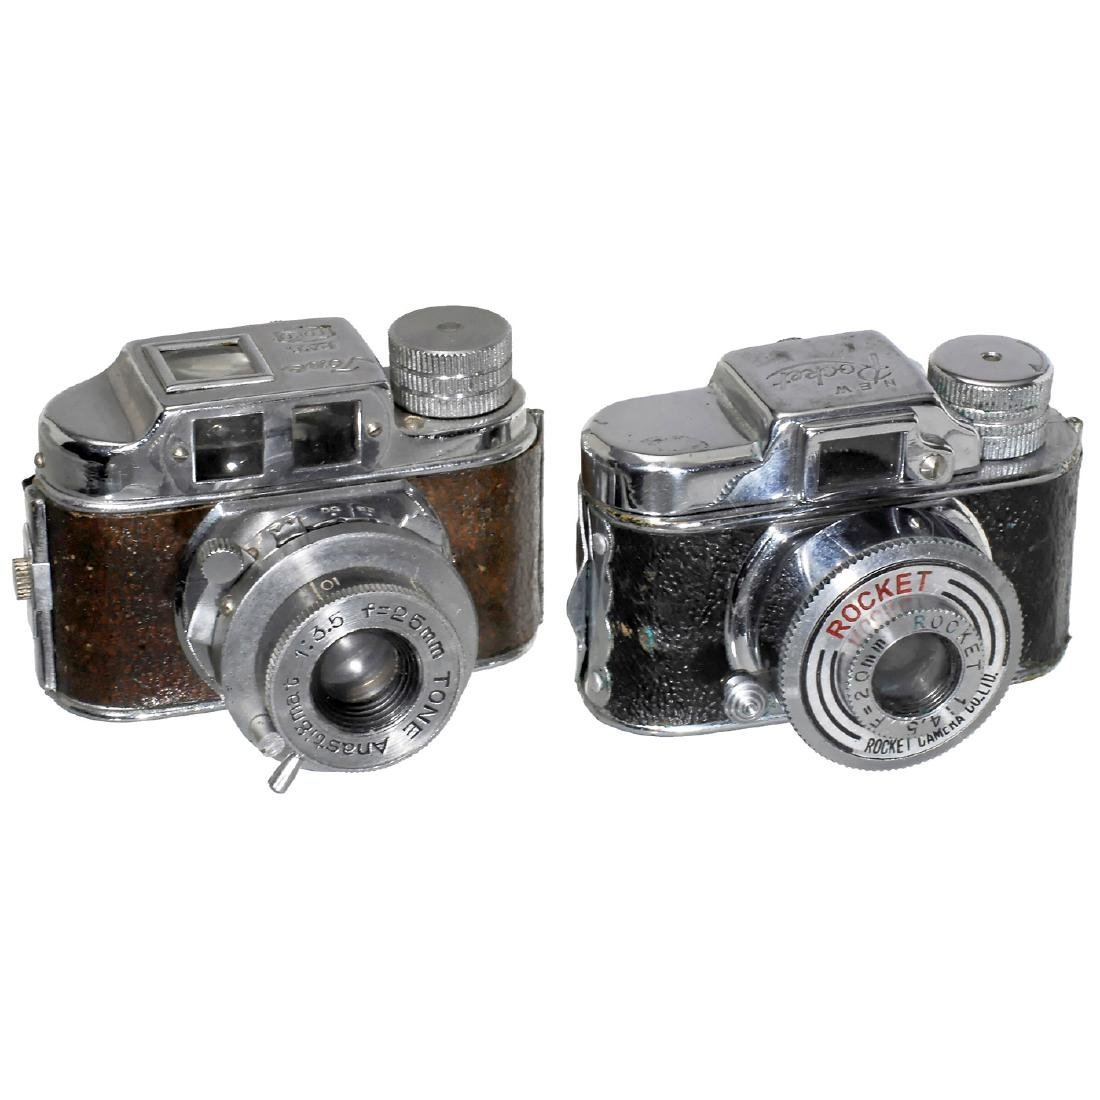 """Subminiature Cameras: """"Tone"""" and """"Rocket"""""""